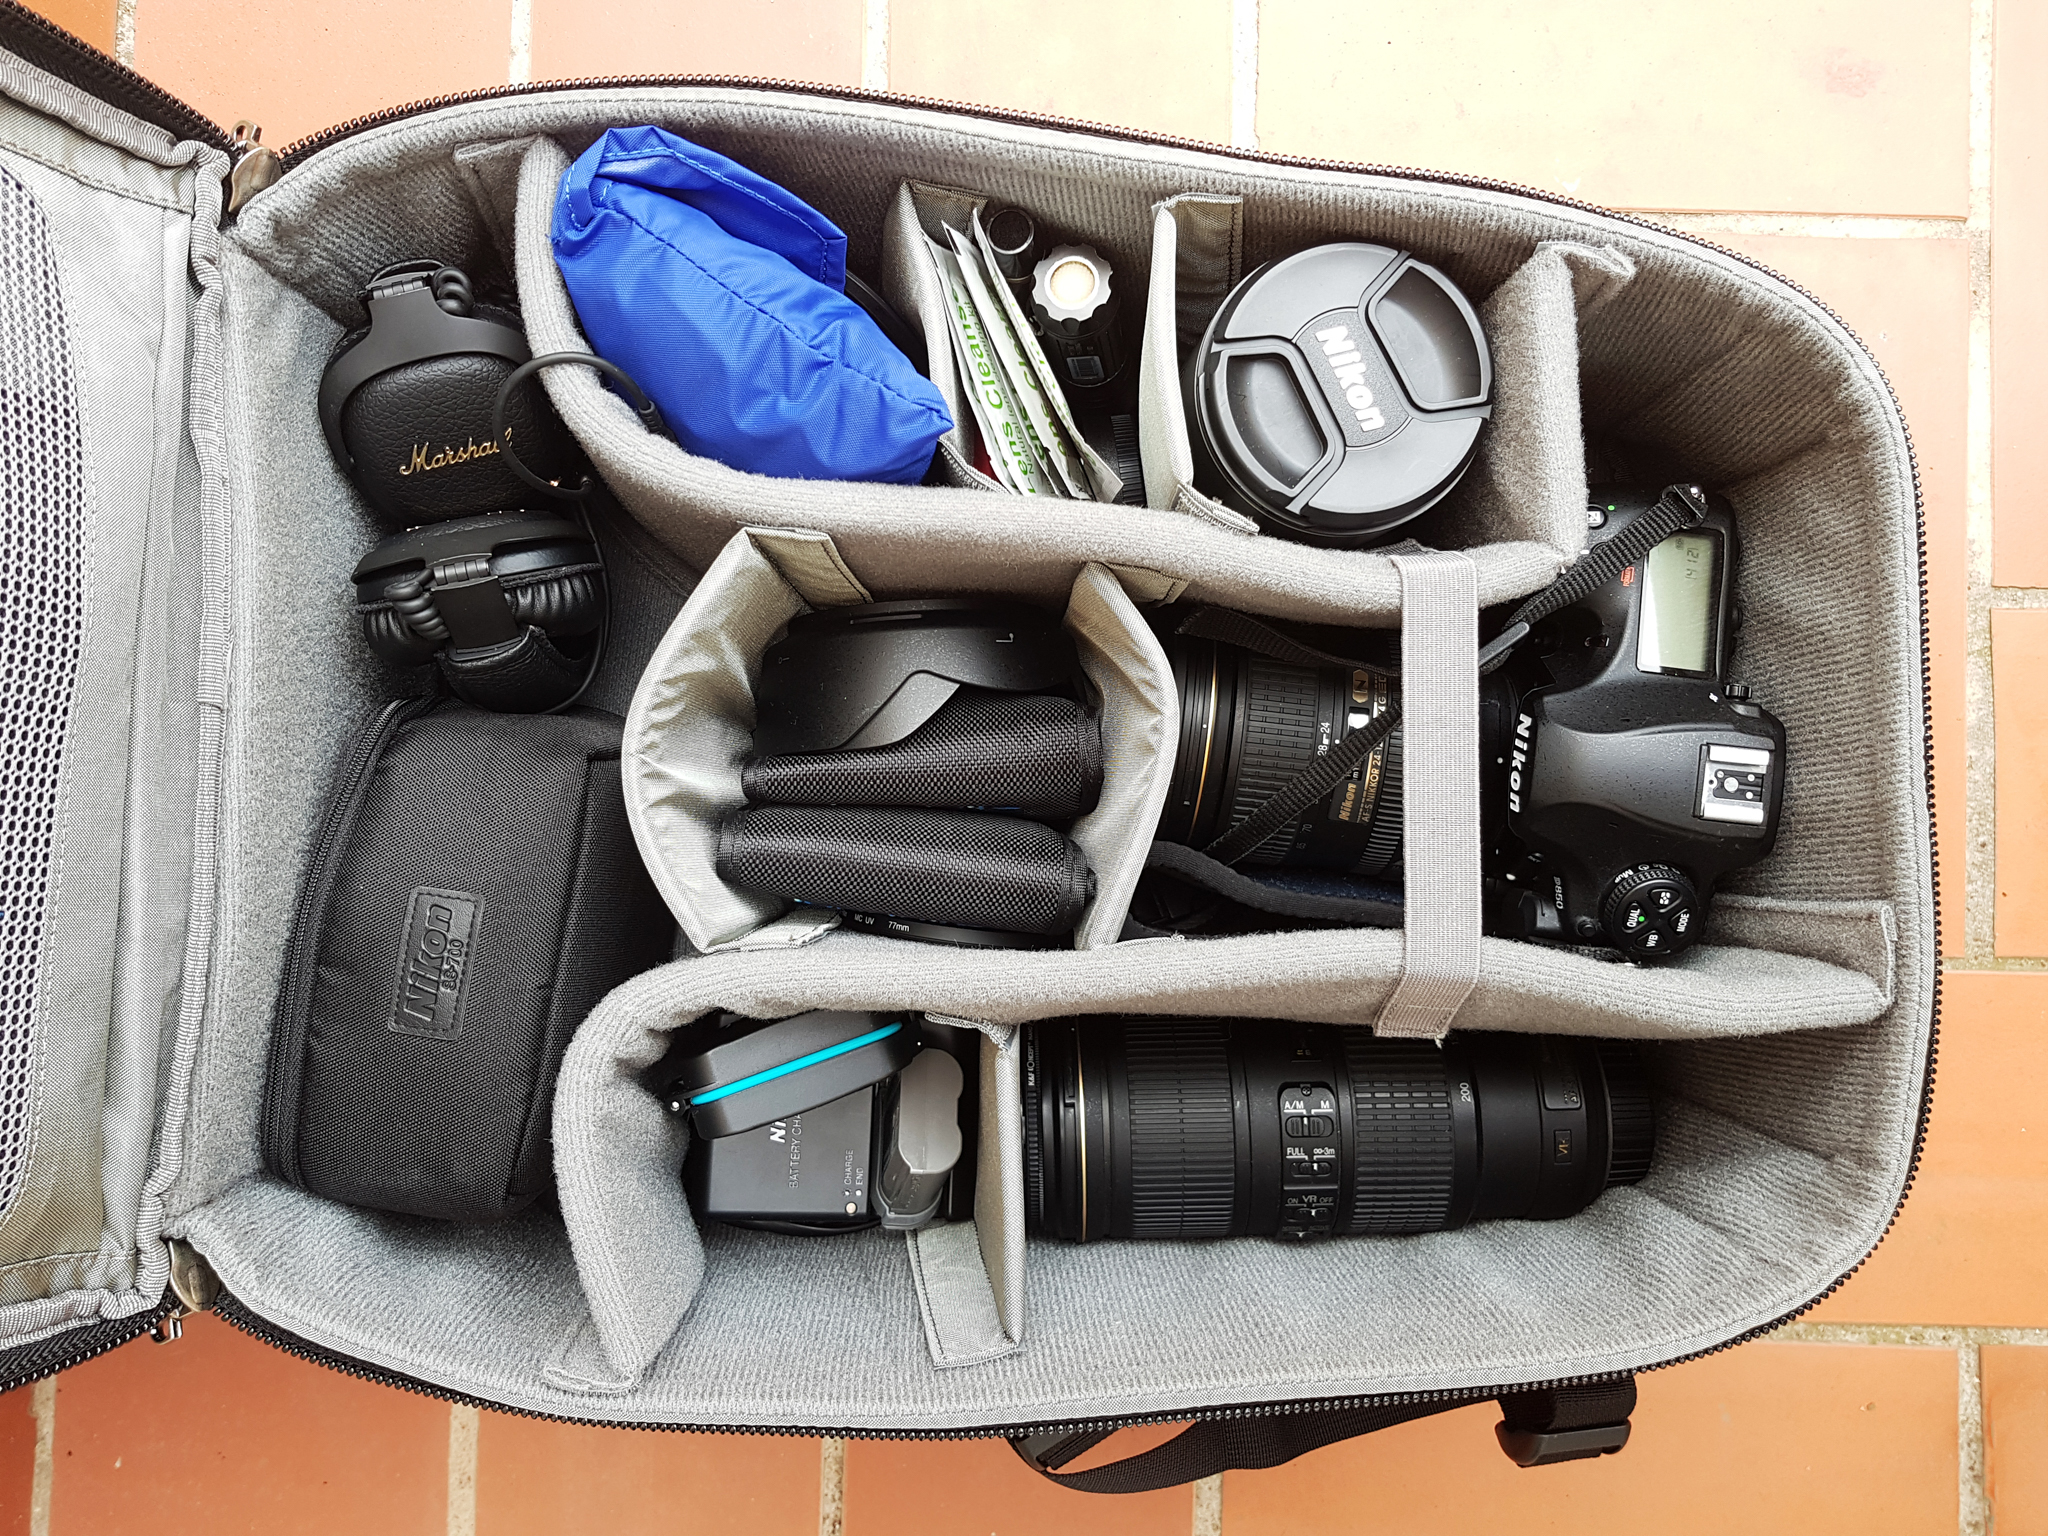 My reviews: Think Tank Photo Airport Commuter camera backpack